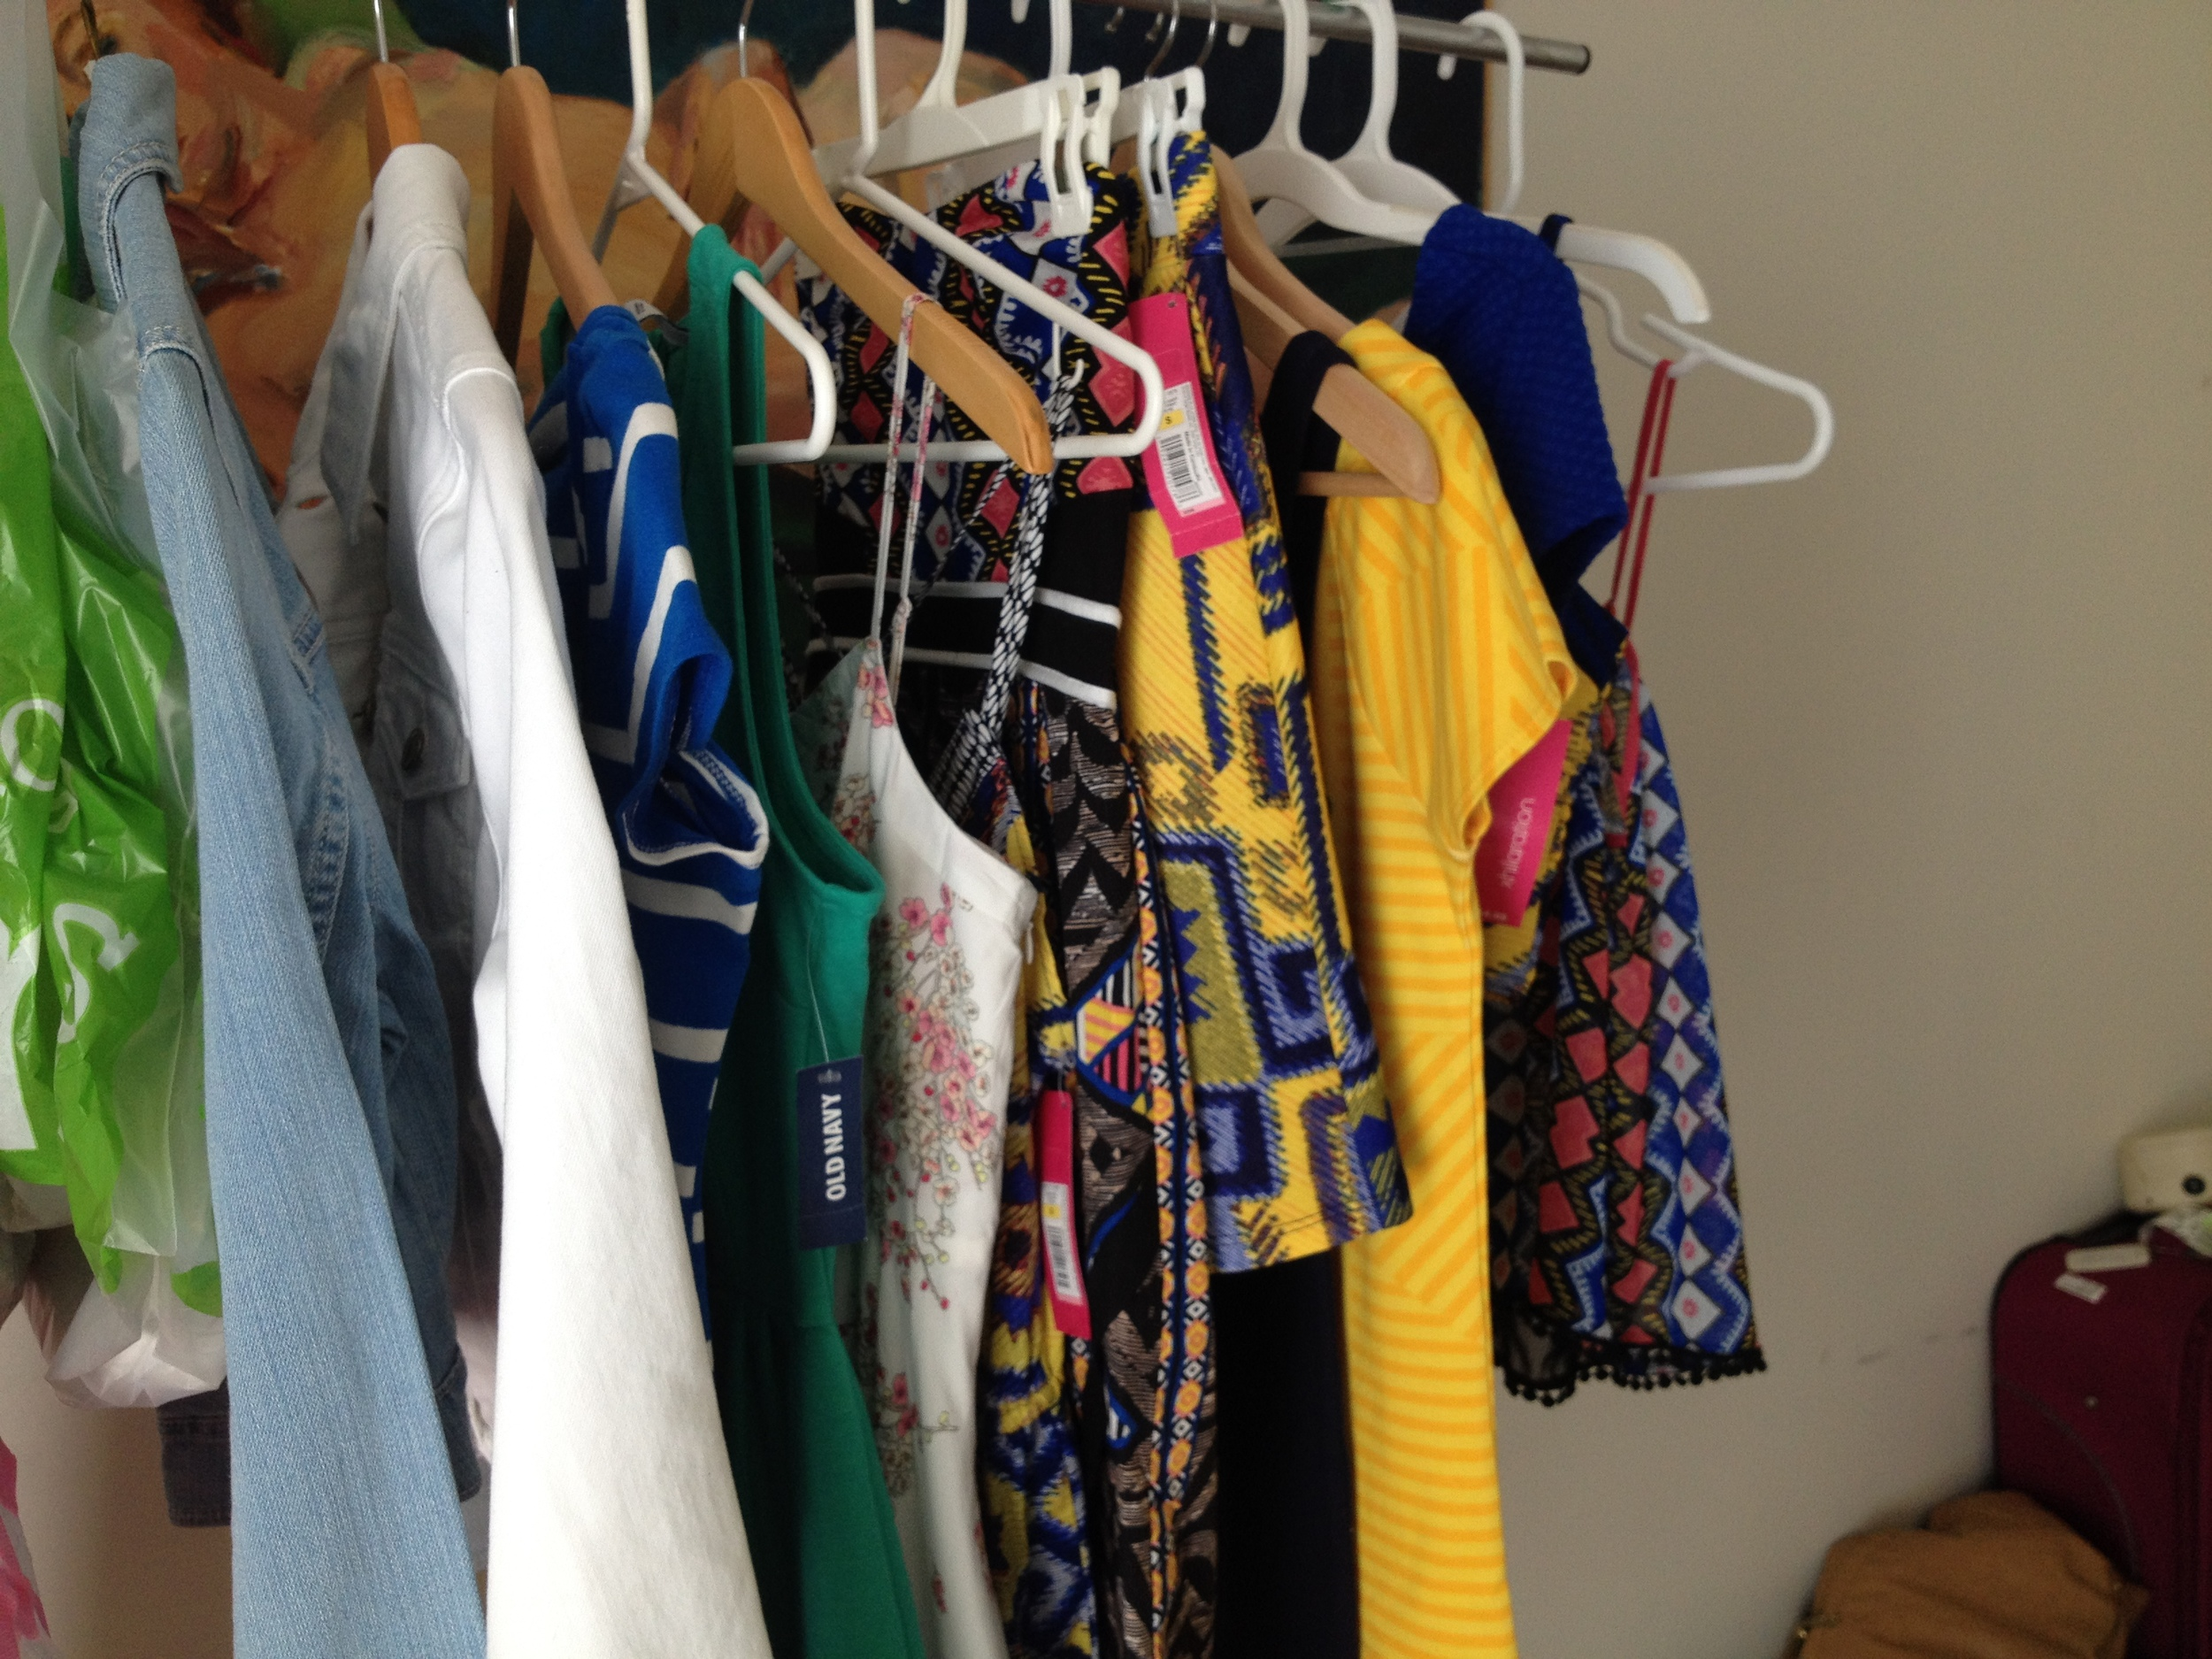 SHOOT DAY! All of the outfits hung up and ready to be steamed on location!